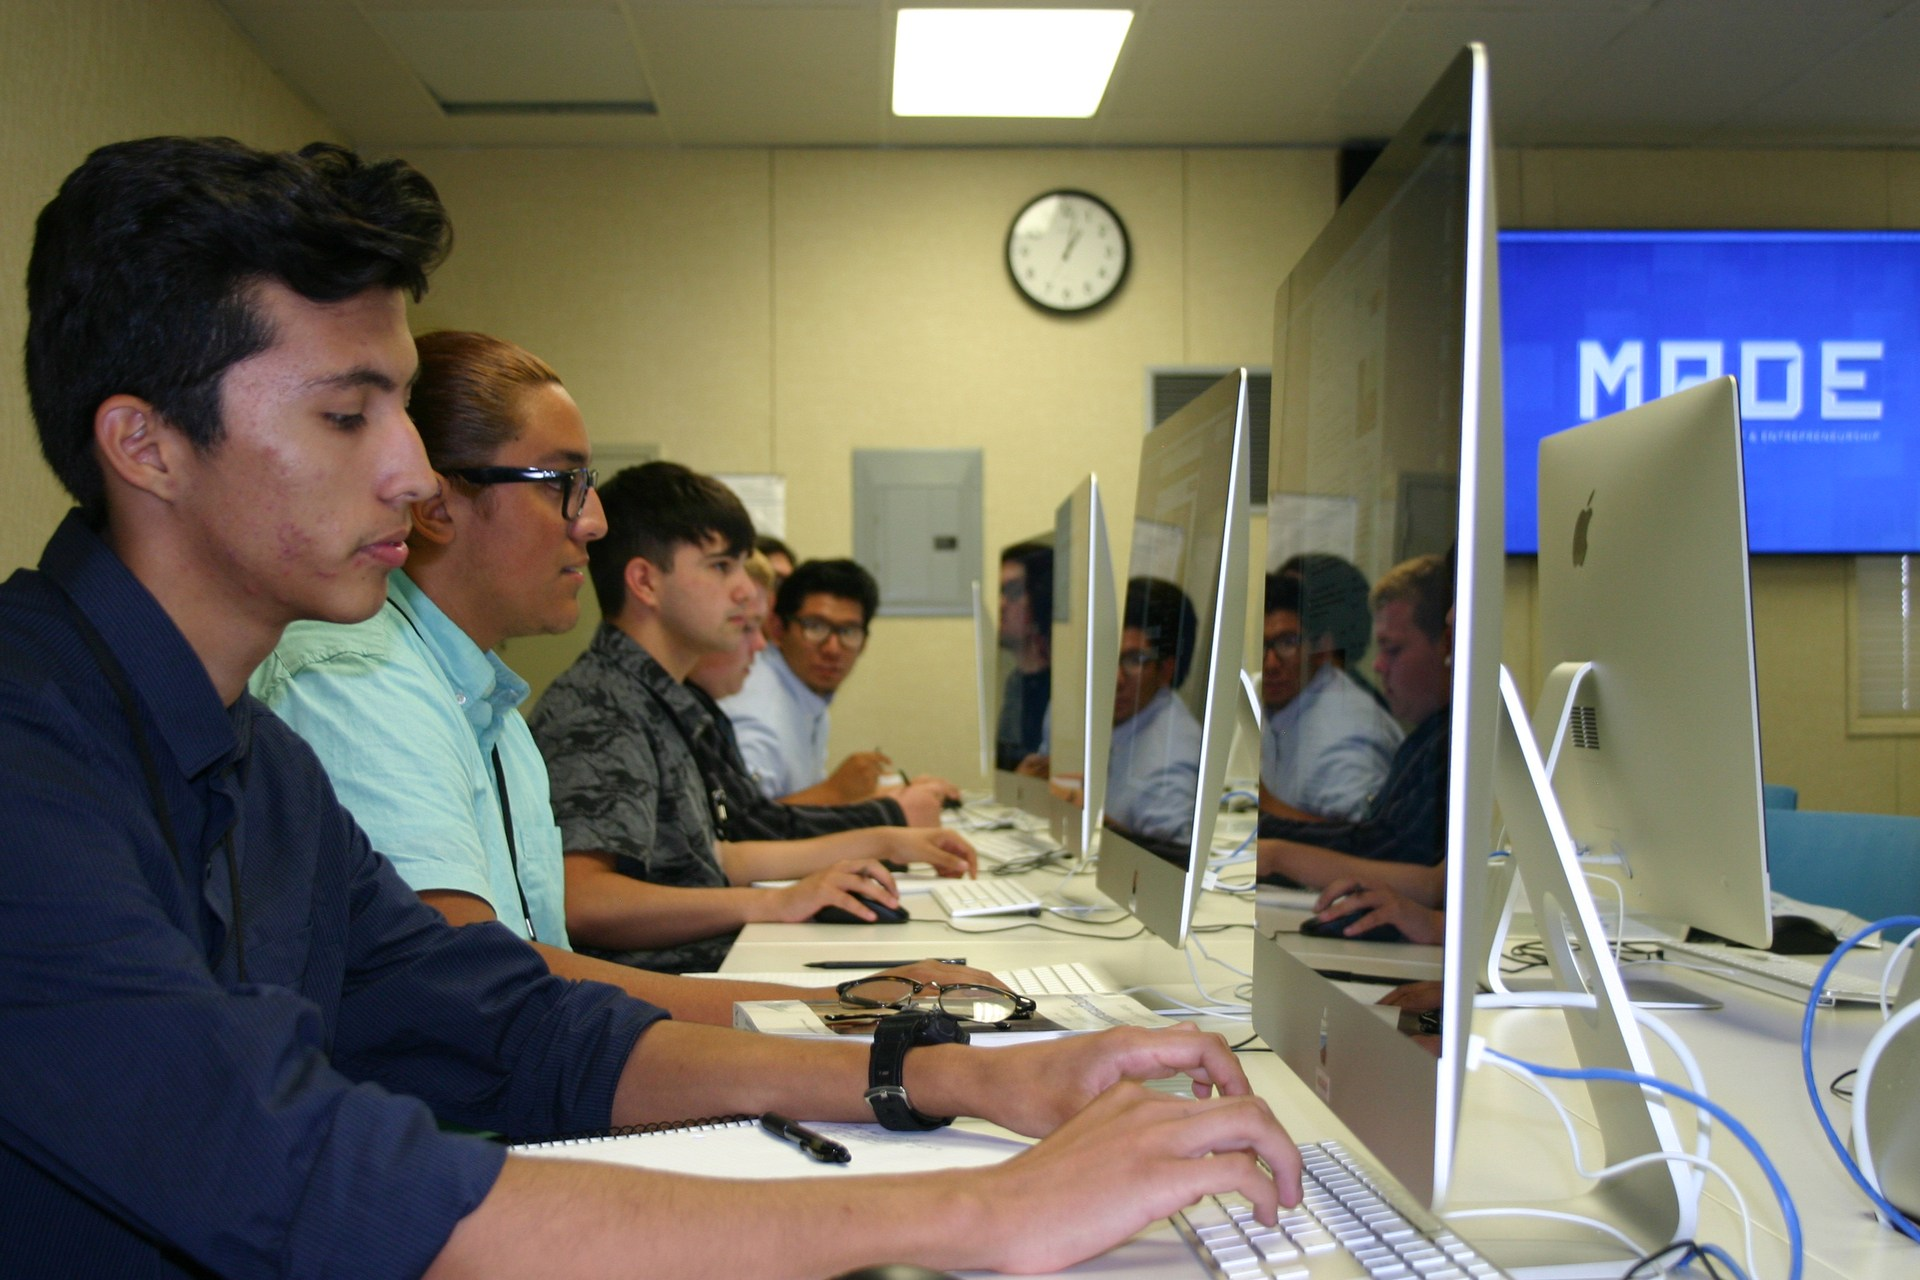 students at computer in mobile app development class